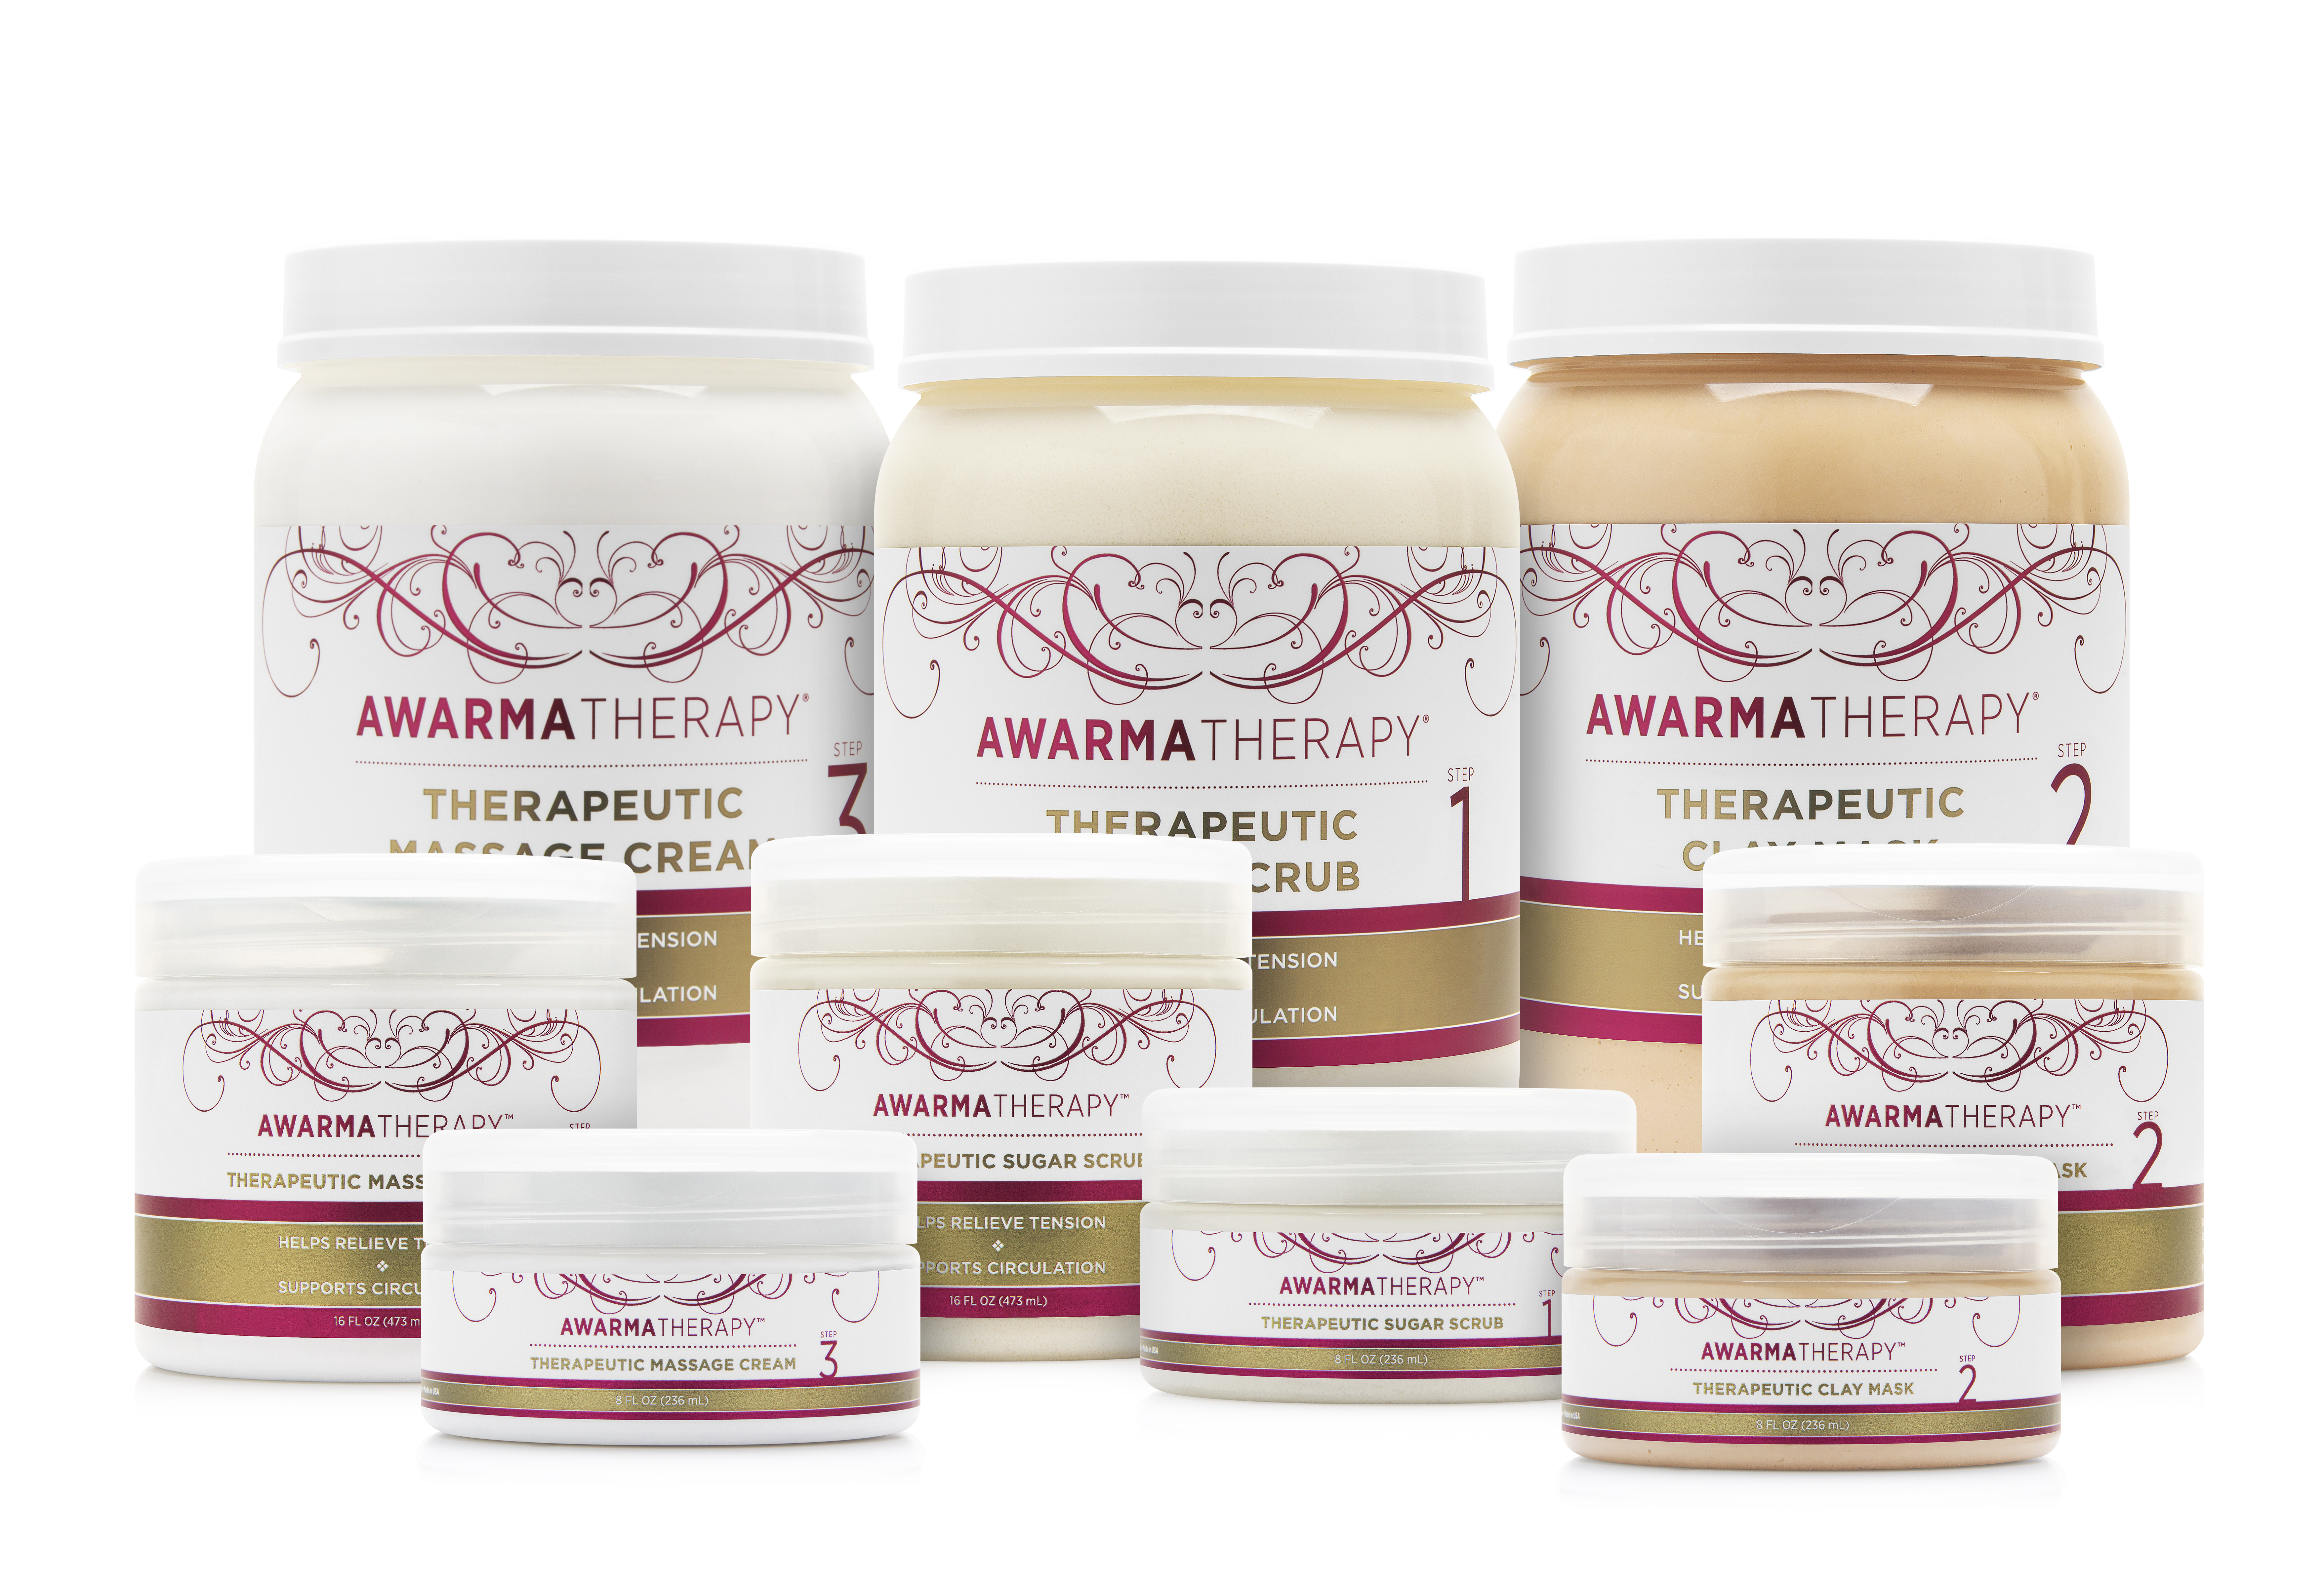 Awarmatherapy Products